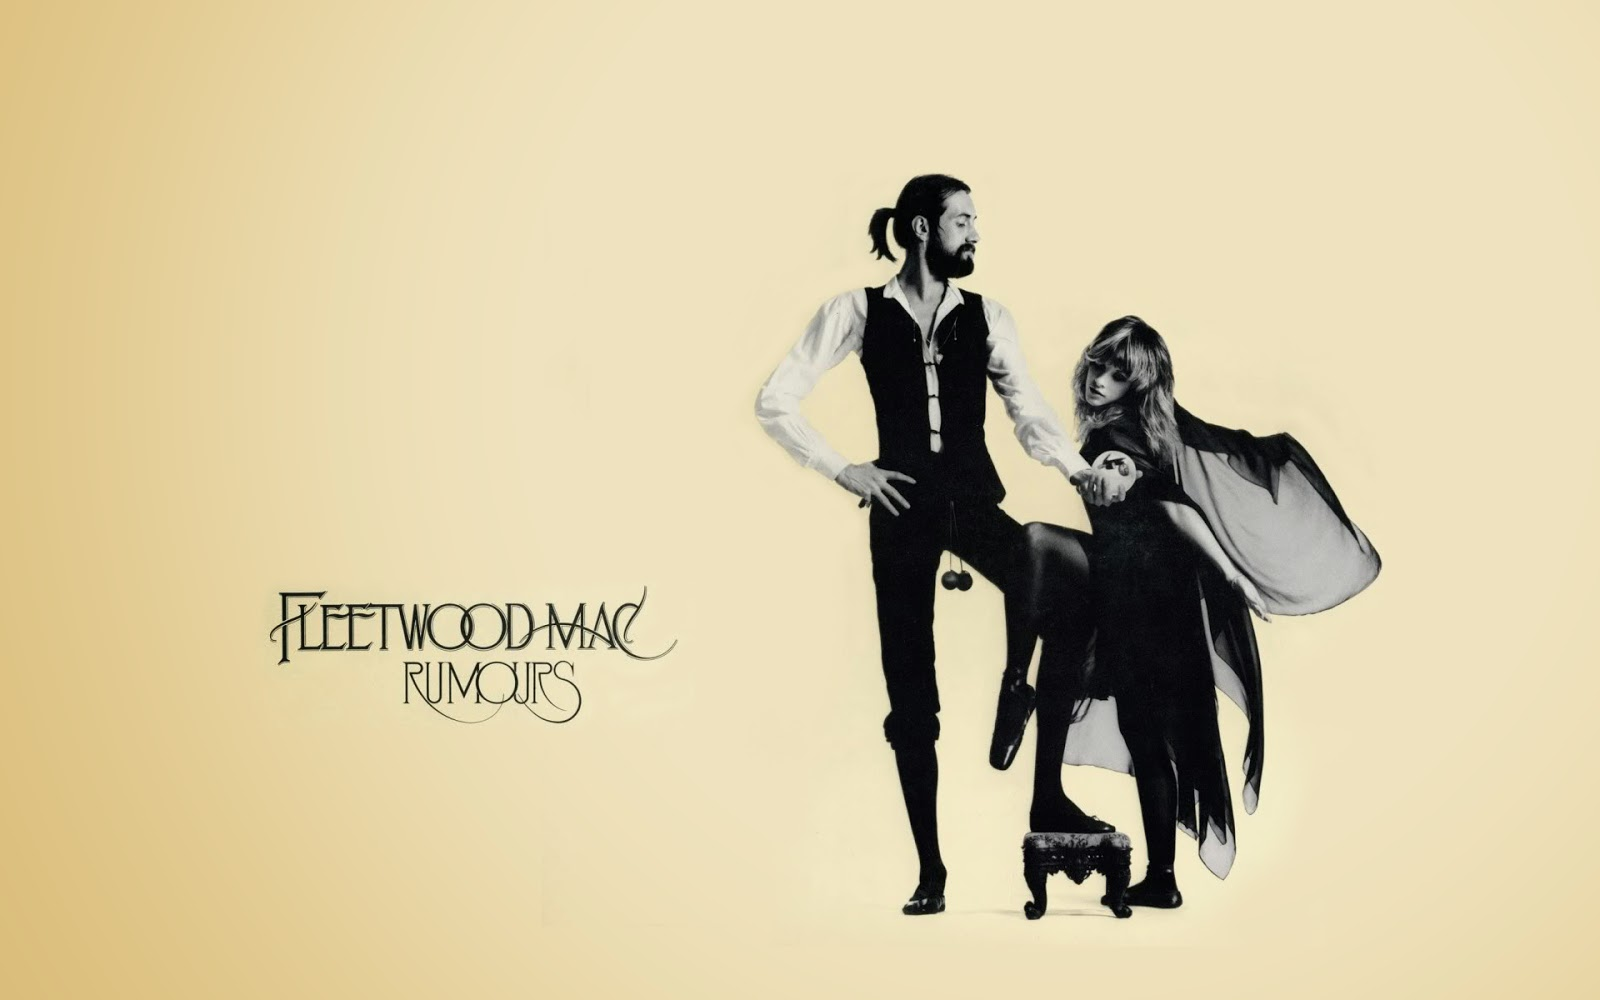 Fleetwood Mac - Rumours [DTS]